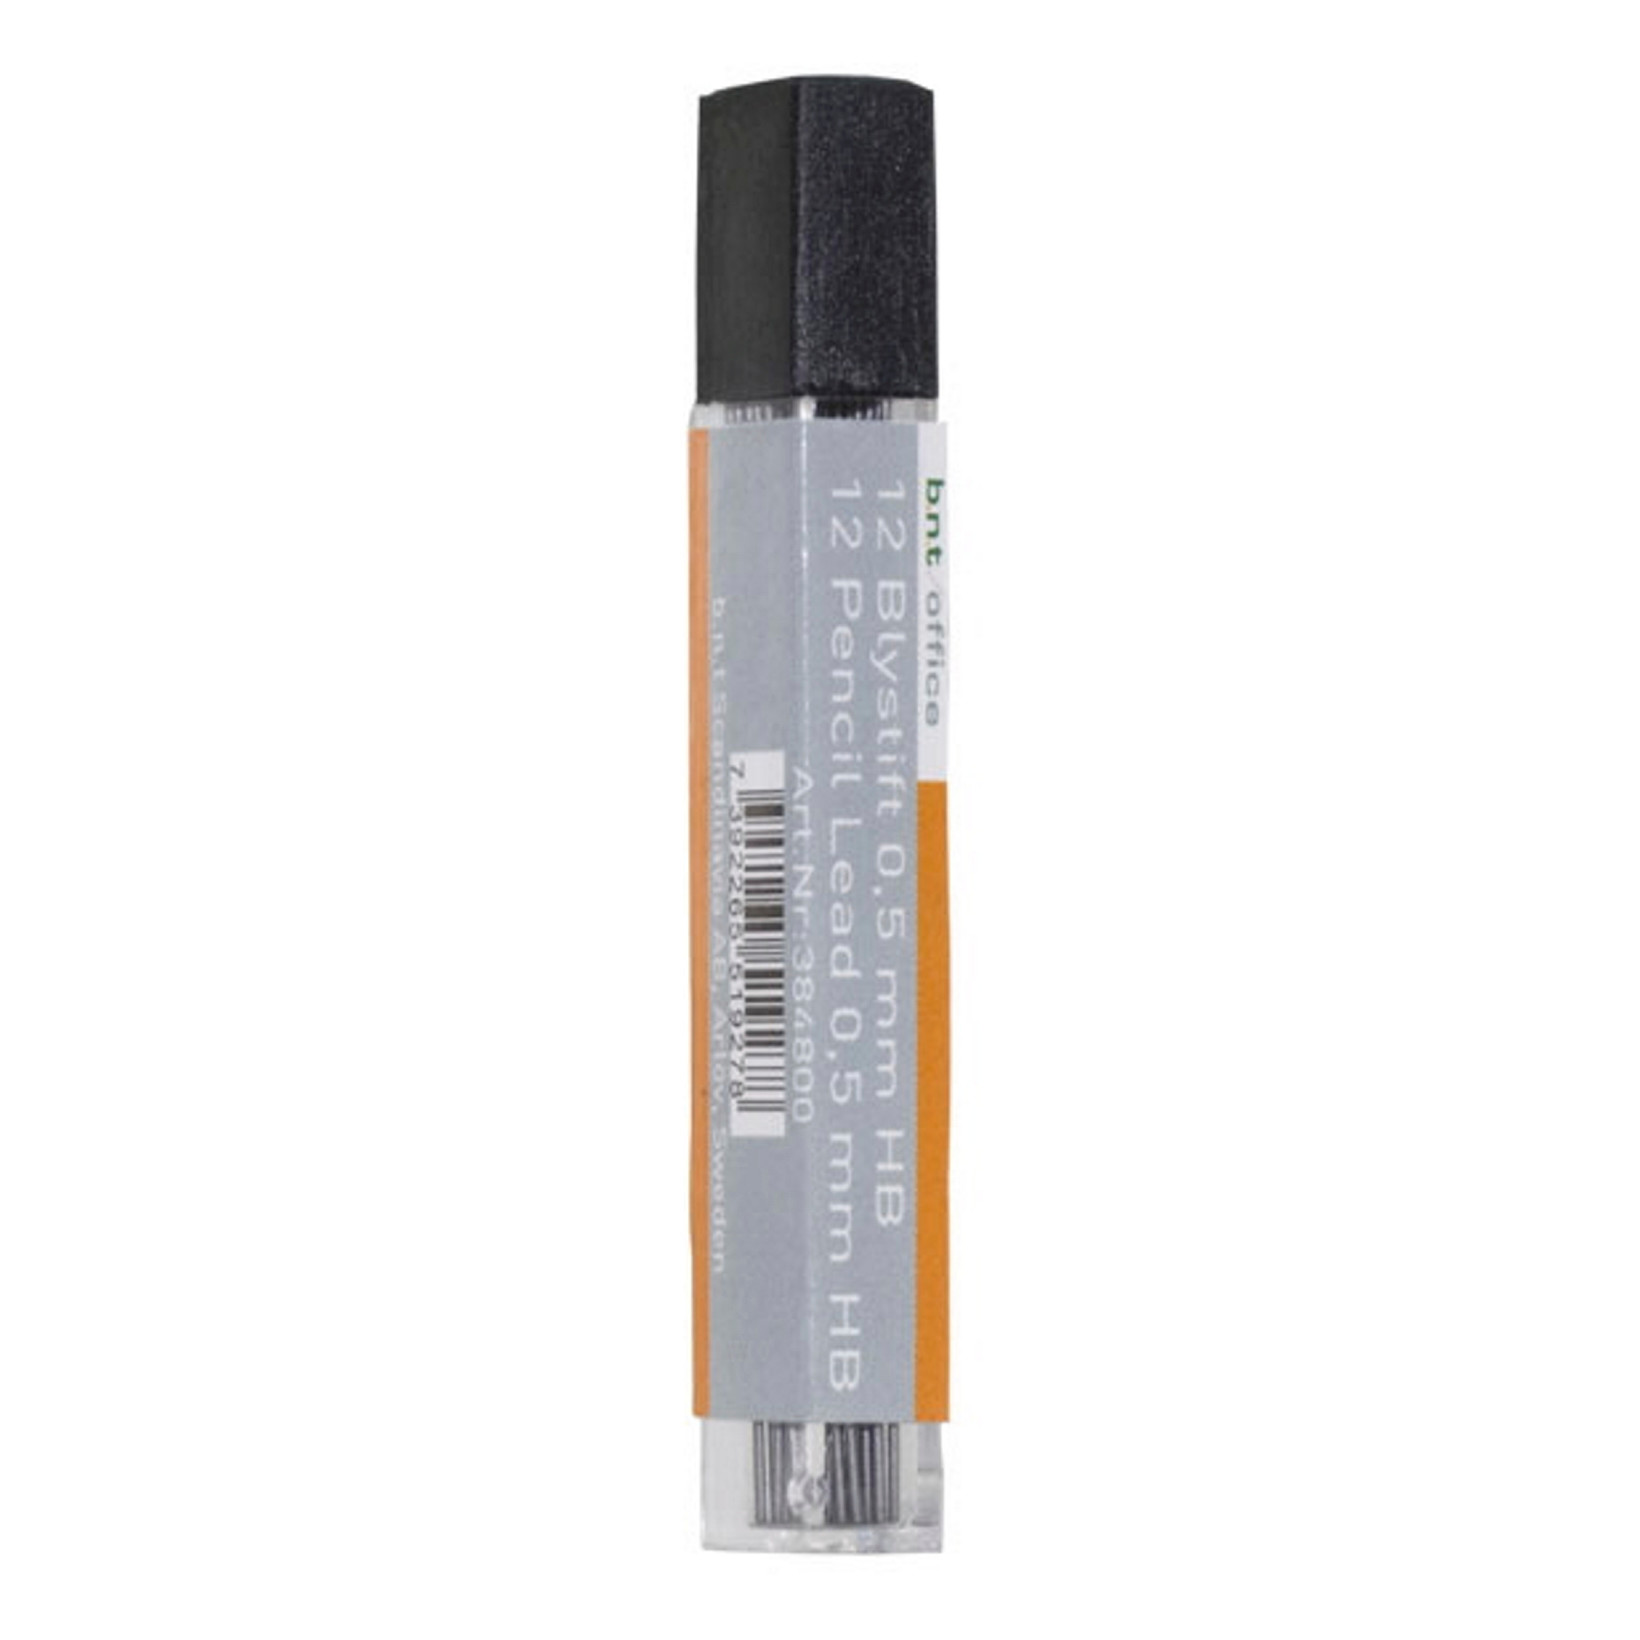 Stifter Eco BNT Office 0,5 mm HB - 12 stifter pr tube 384800 - 24 tuber